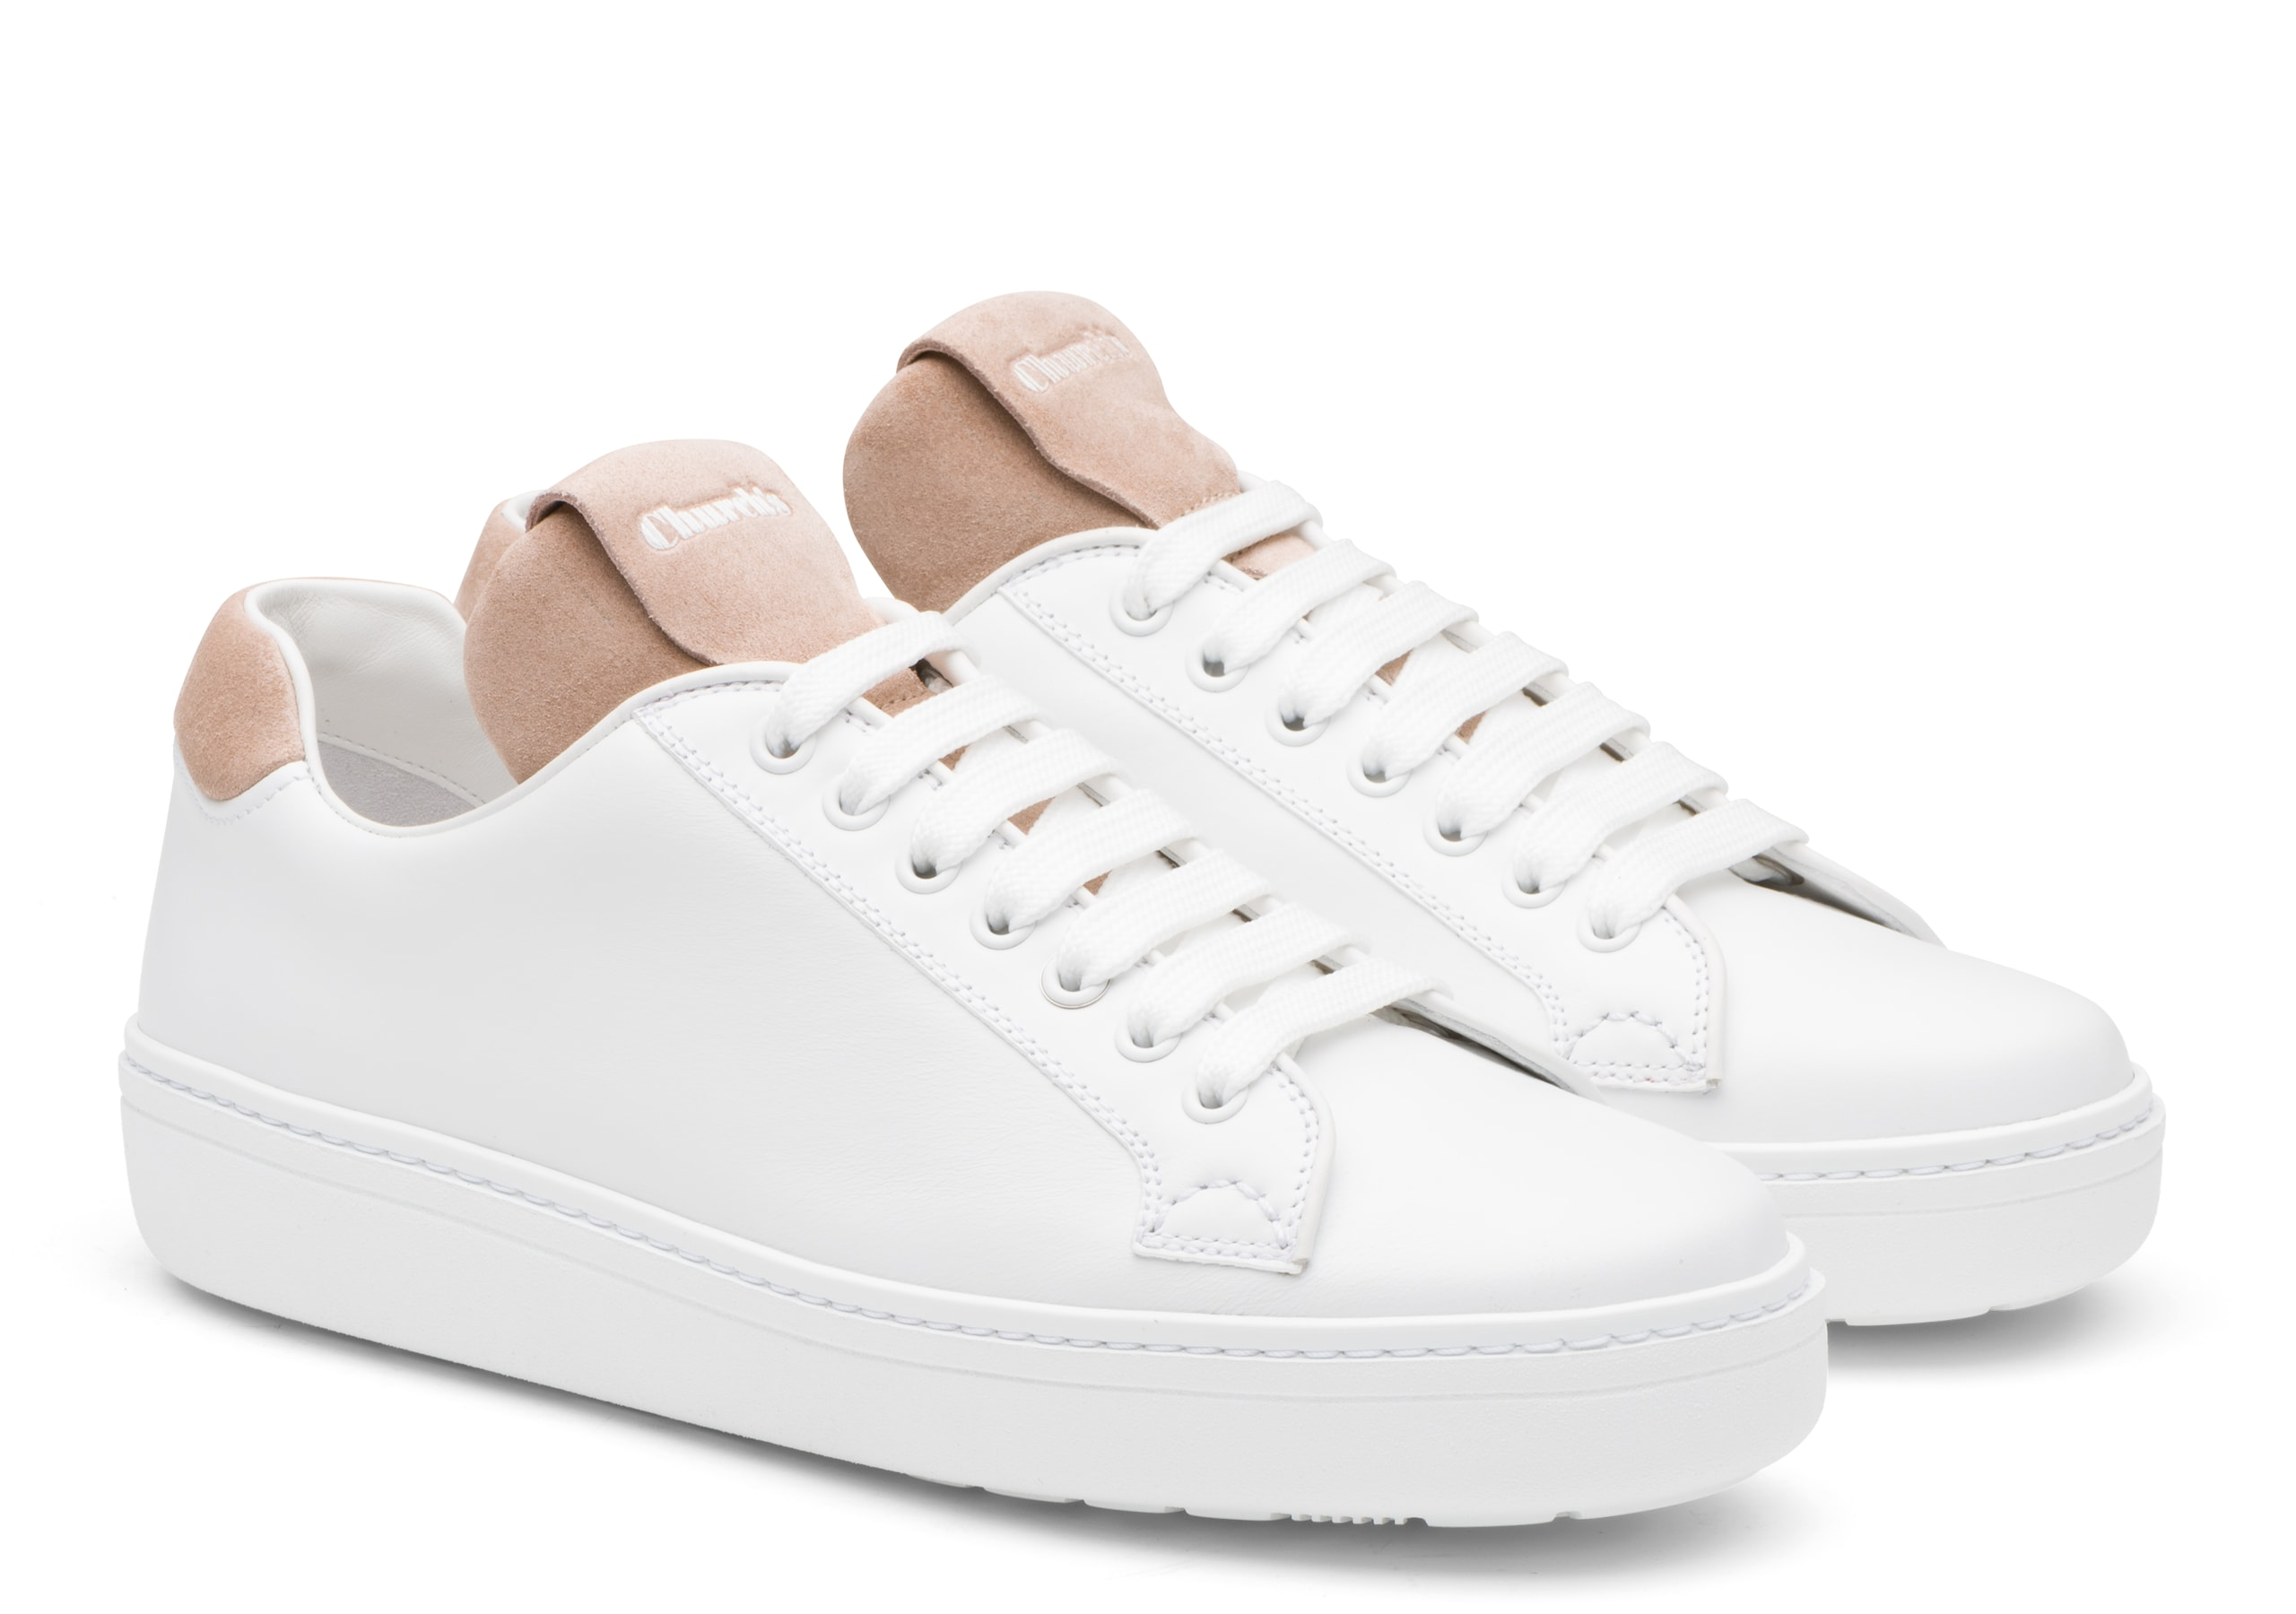 Boland w Church's Calf Leather and Suede Classic Sneaker White